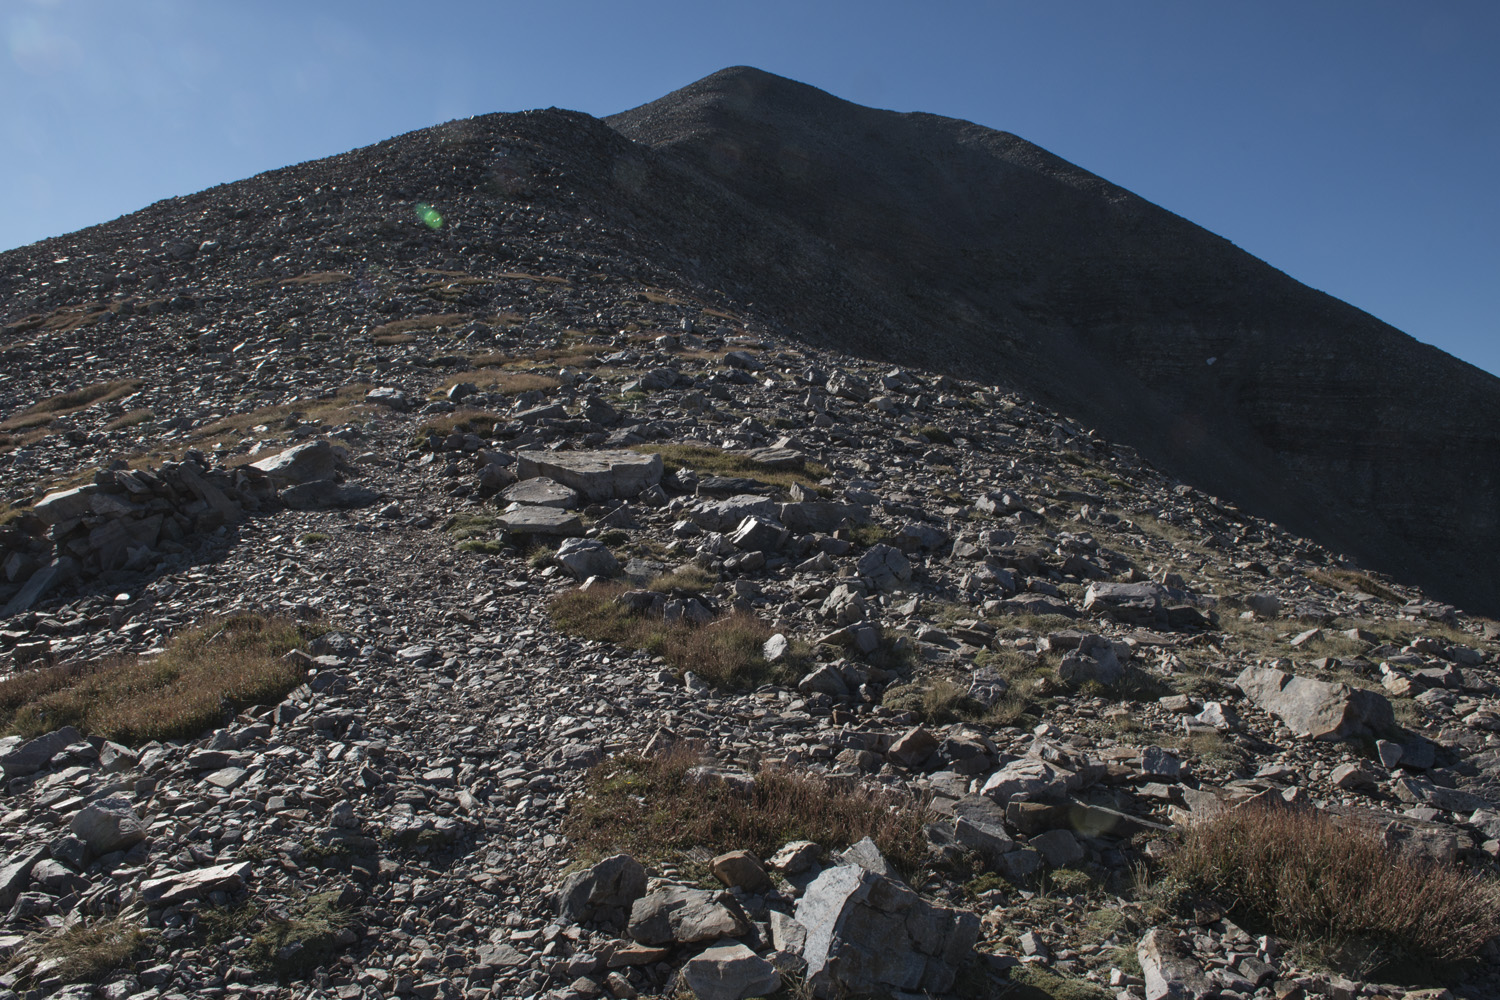 The trail above tree line. The scree goes all the way up.